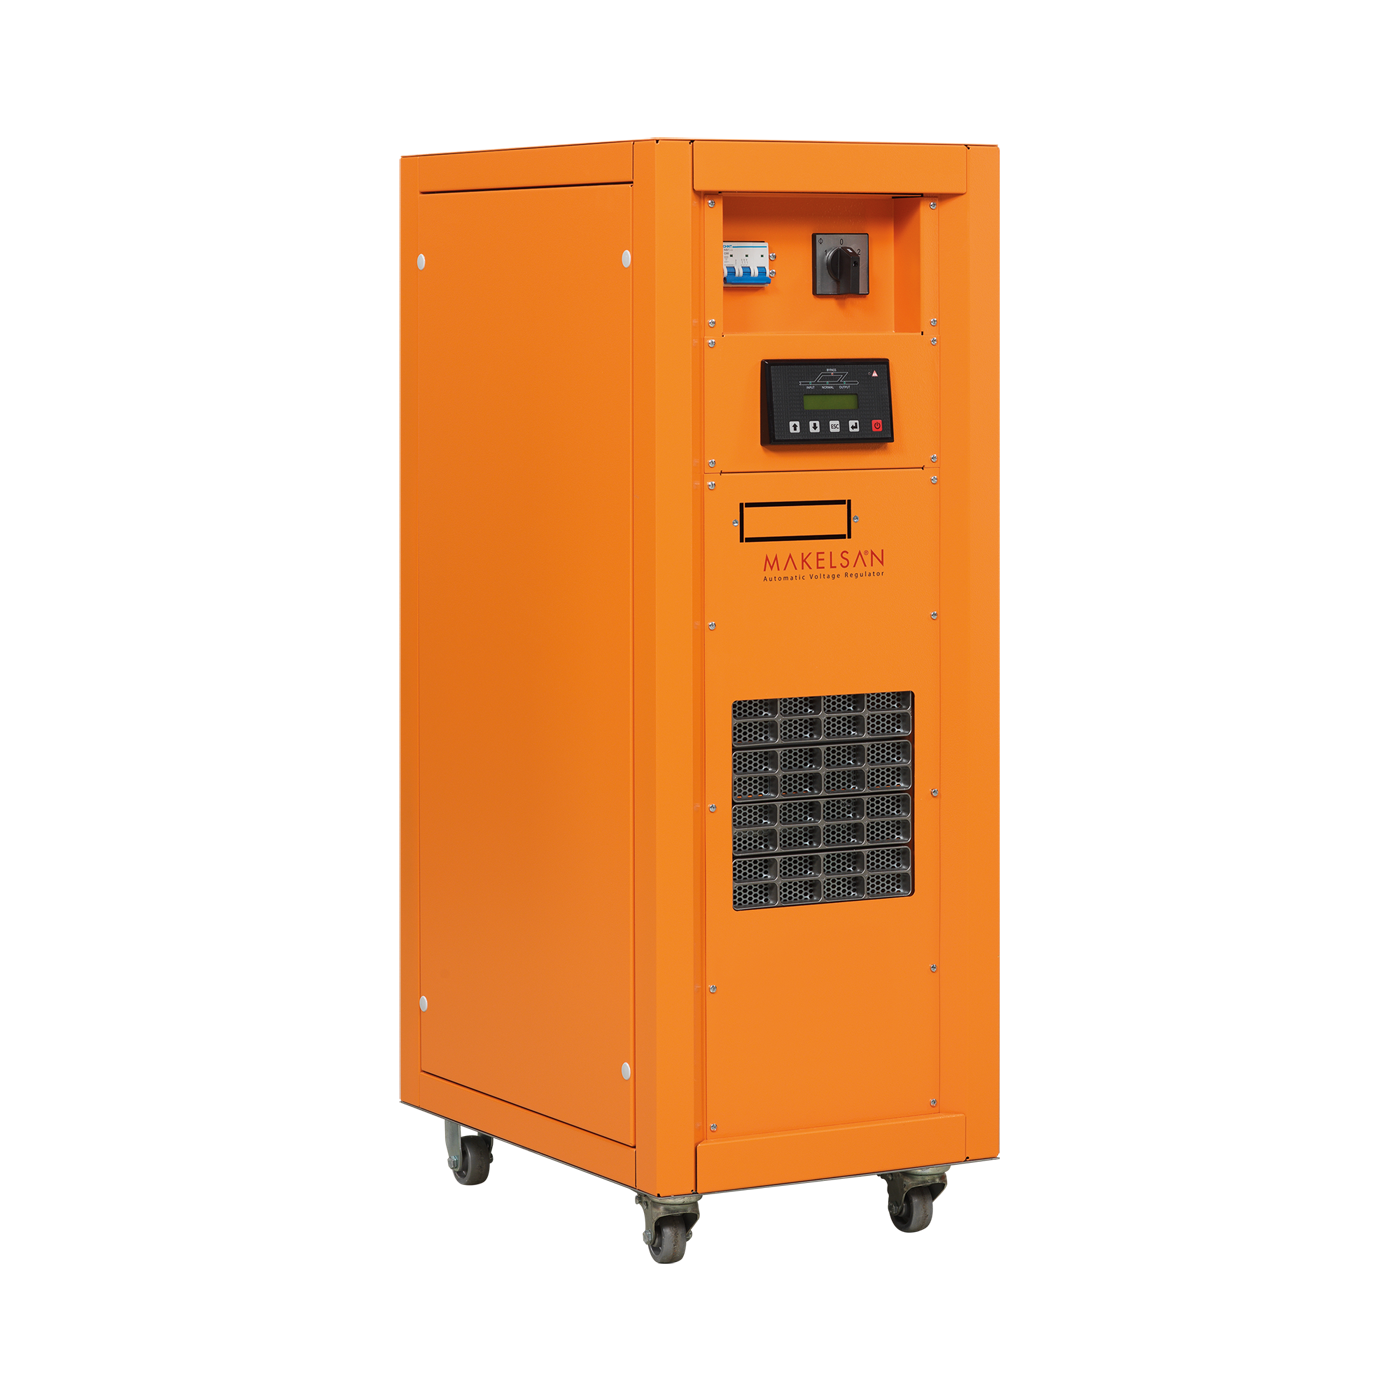 Makelsan Ups Uninterruptible Power Supplies Of Automatic Voltage Control And Regulation Its Input Stabilizer 10 2000 Kva